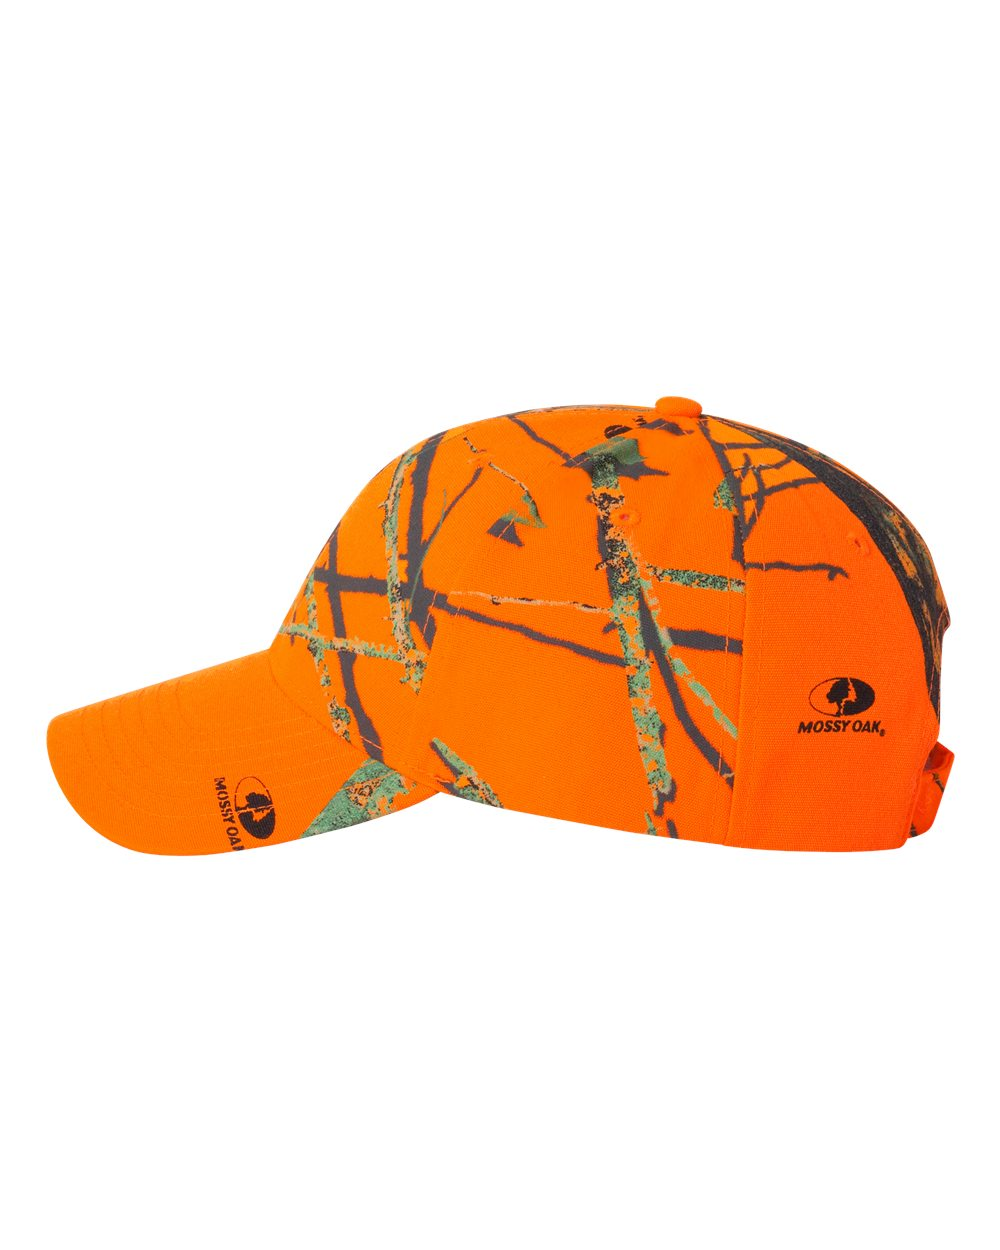 click to view Mossy Oak Break-Up Blaze Orange